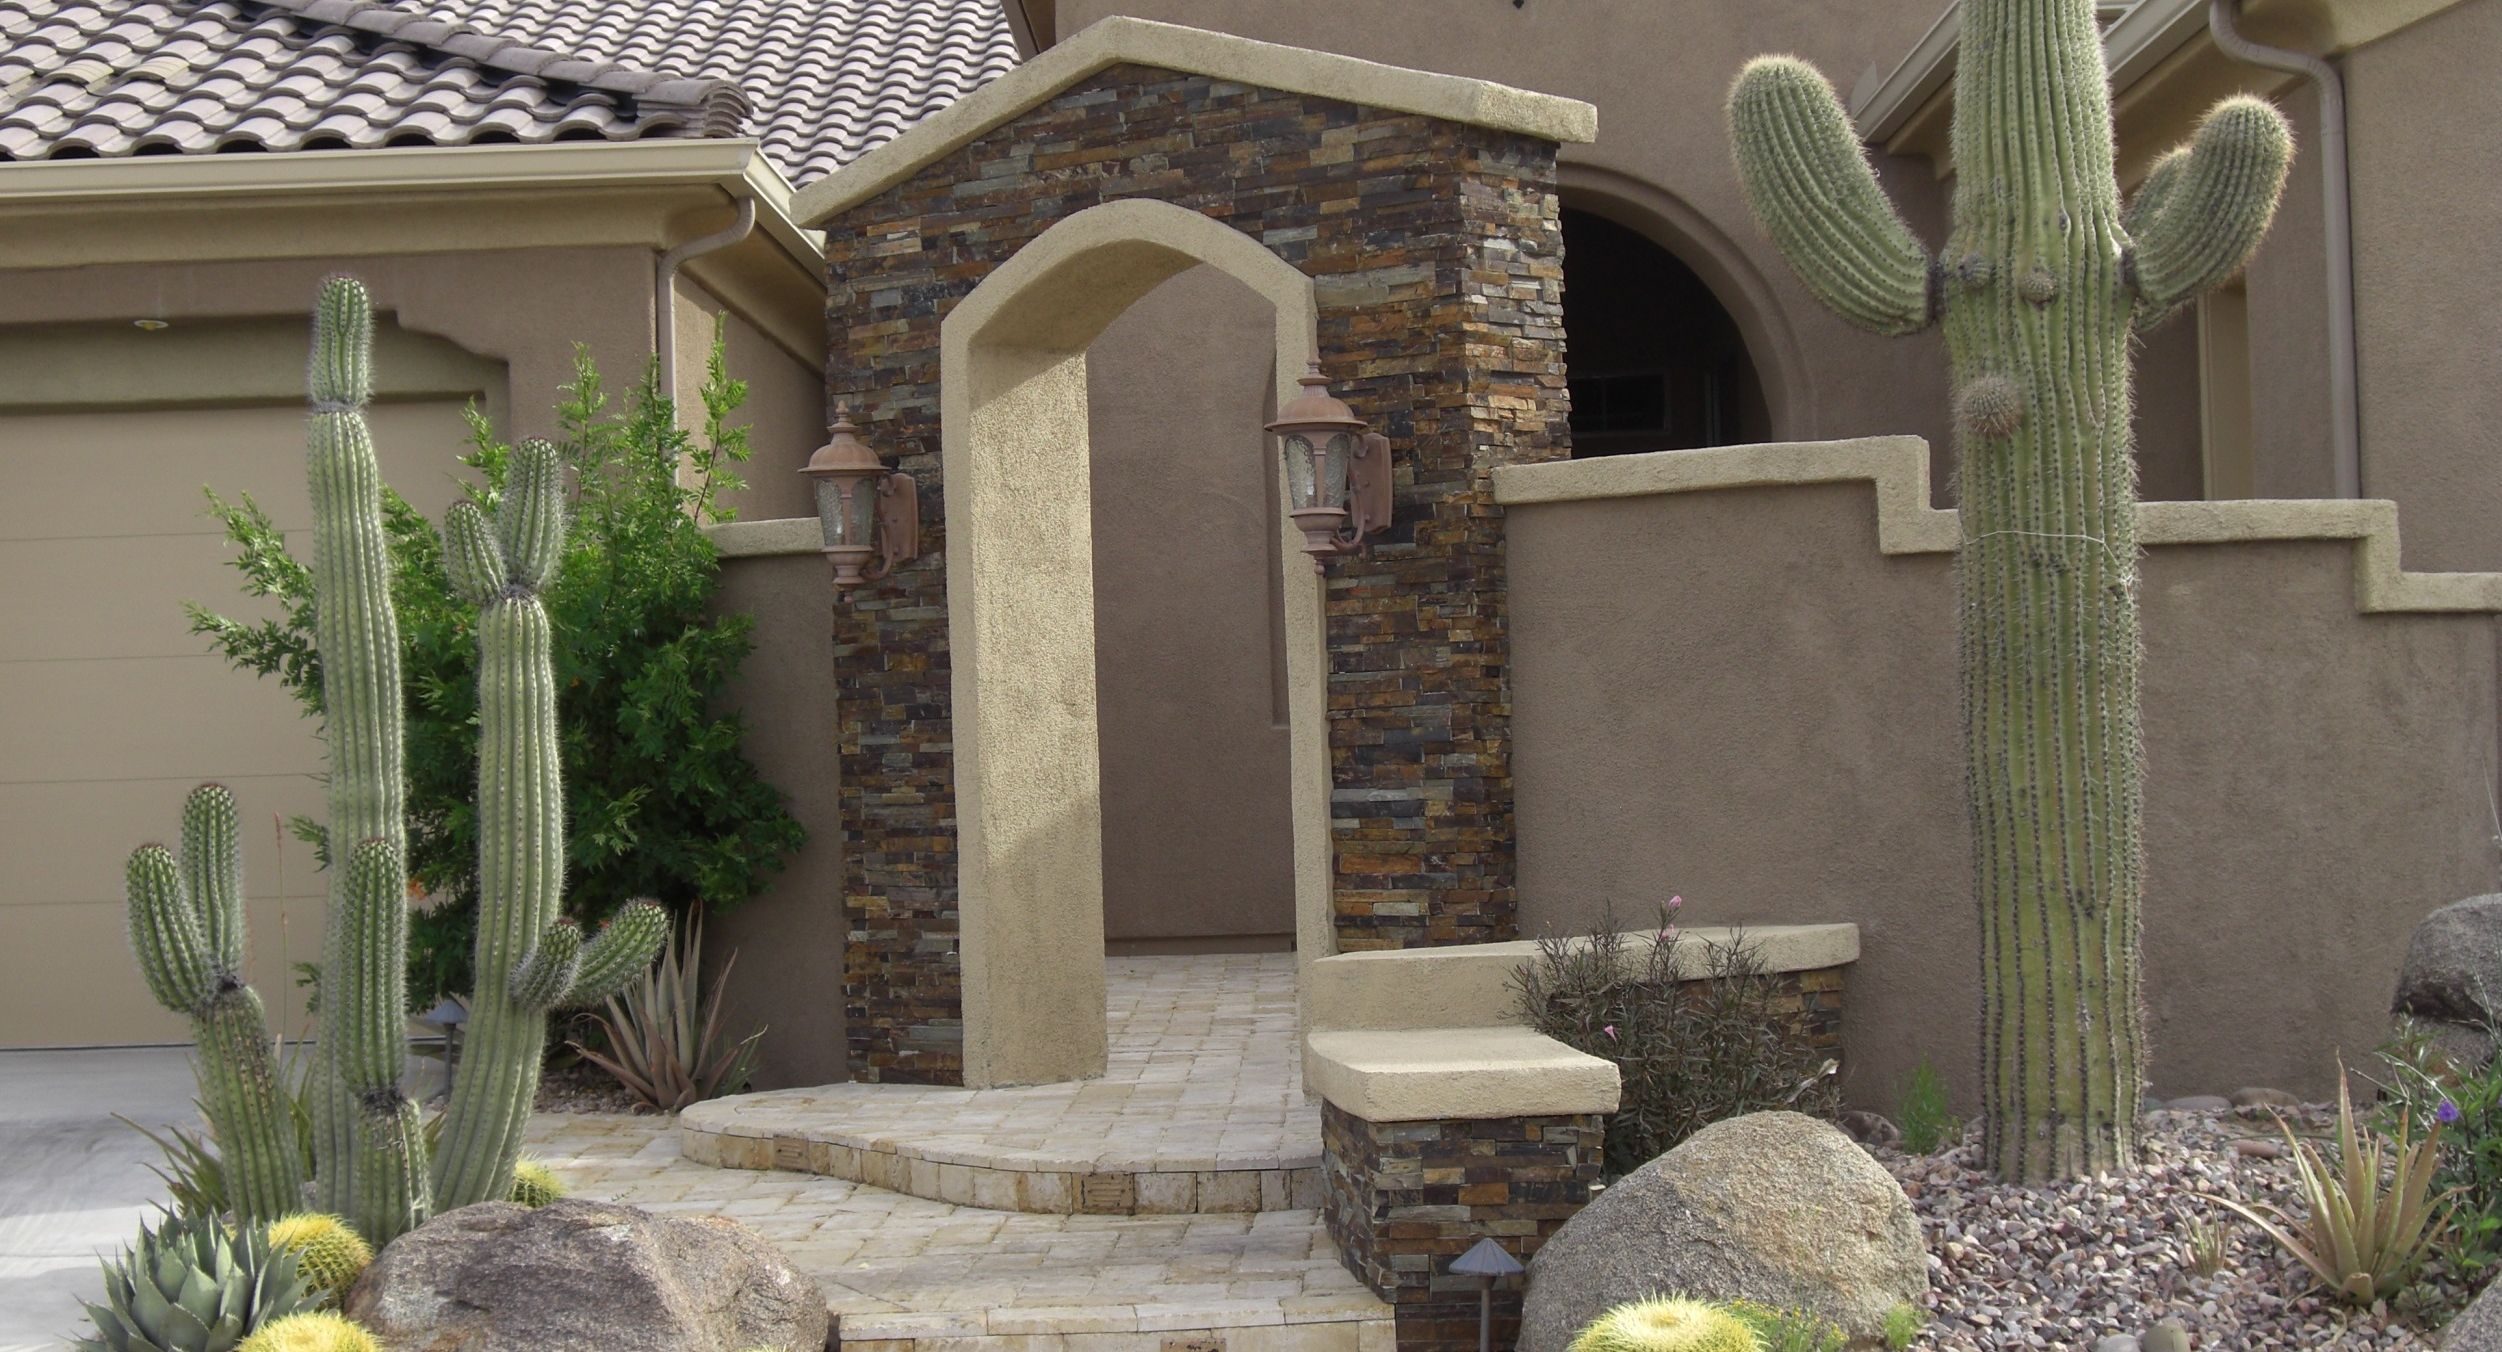 Add so much style and character to your home with courtyard landscaping, Phoenix and Scottsdale. This client chose a secluded courtyard with a sensational dark stone faced arch with a few bold cacti to set it off.